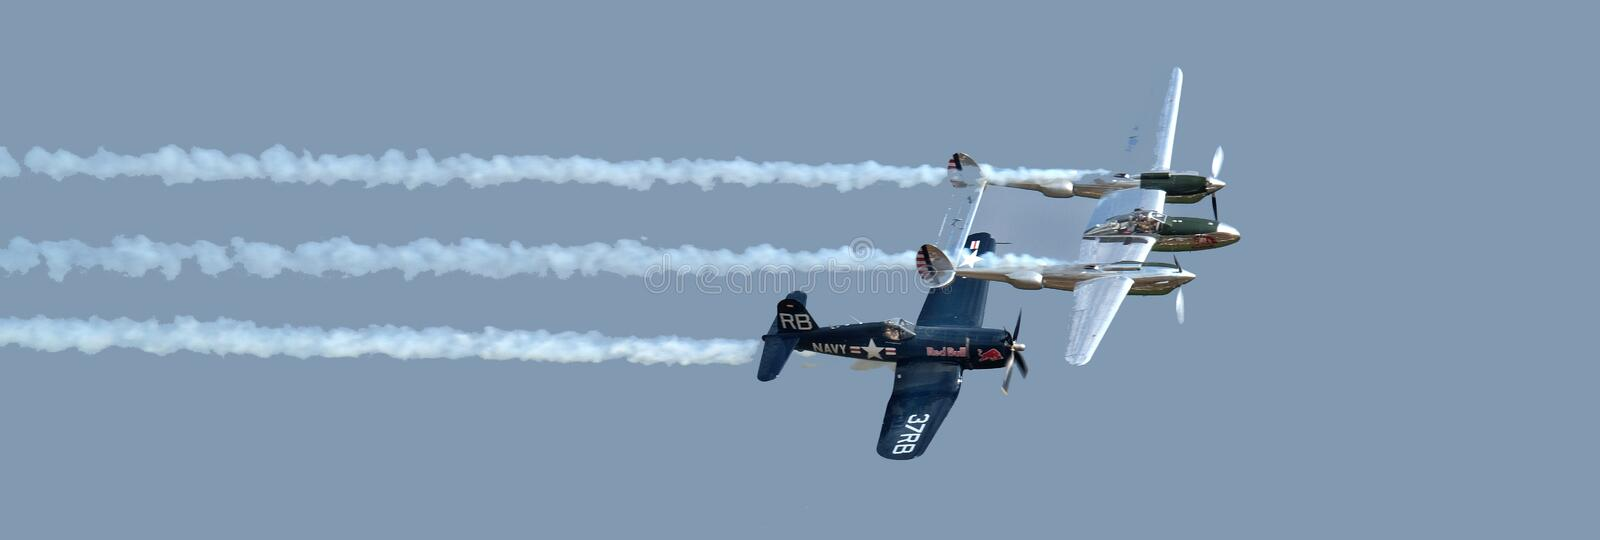 Vought Corsair F4U and Lockheed lightning. royalty free stock images